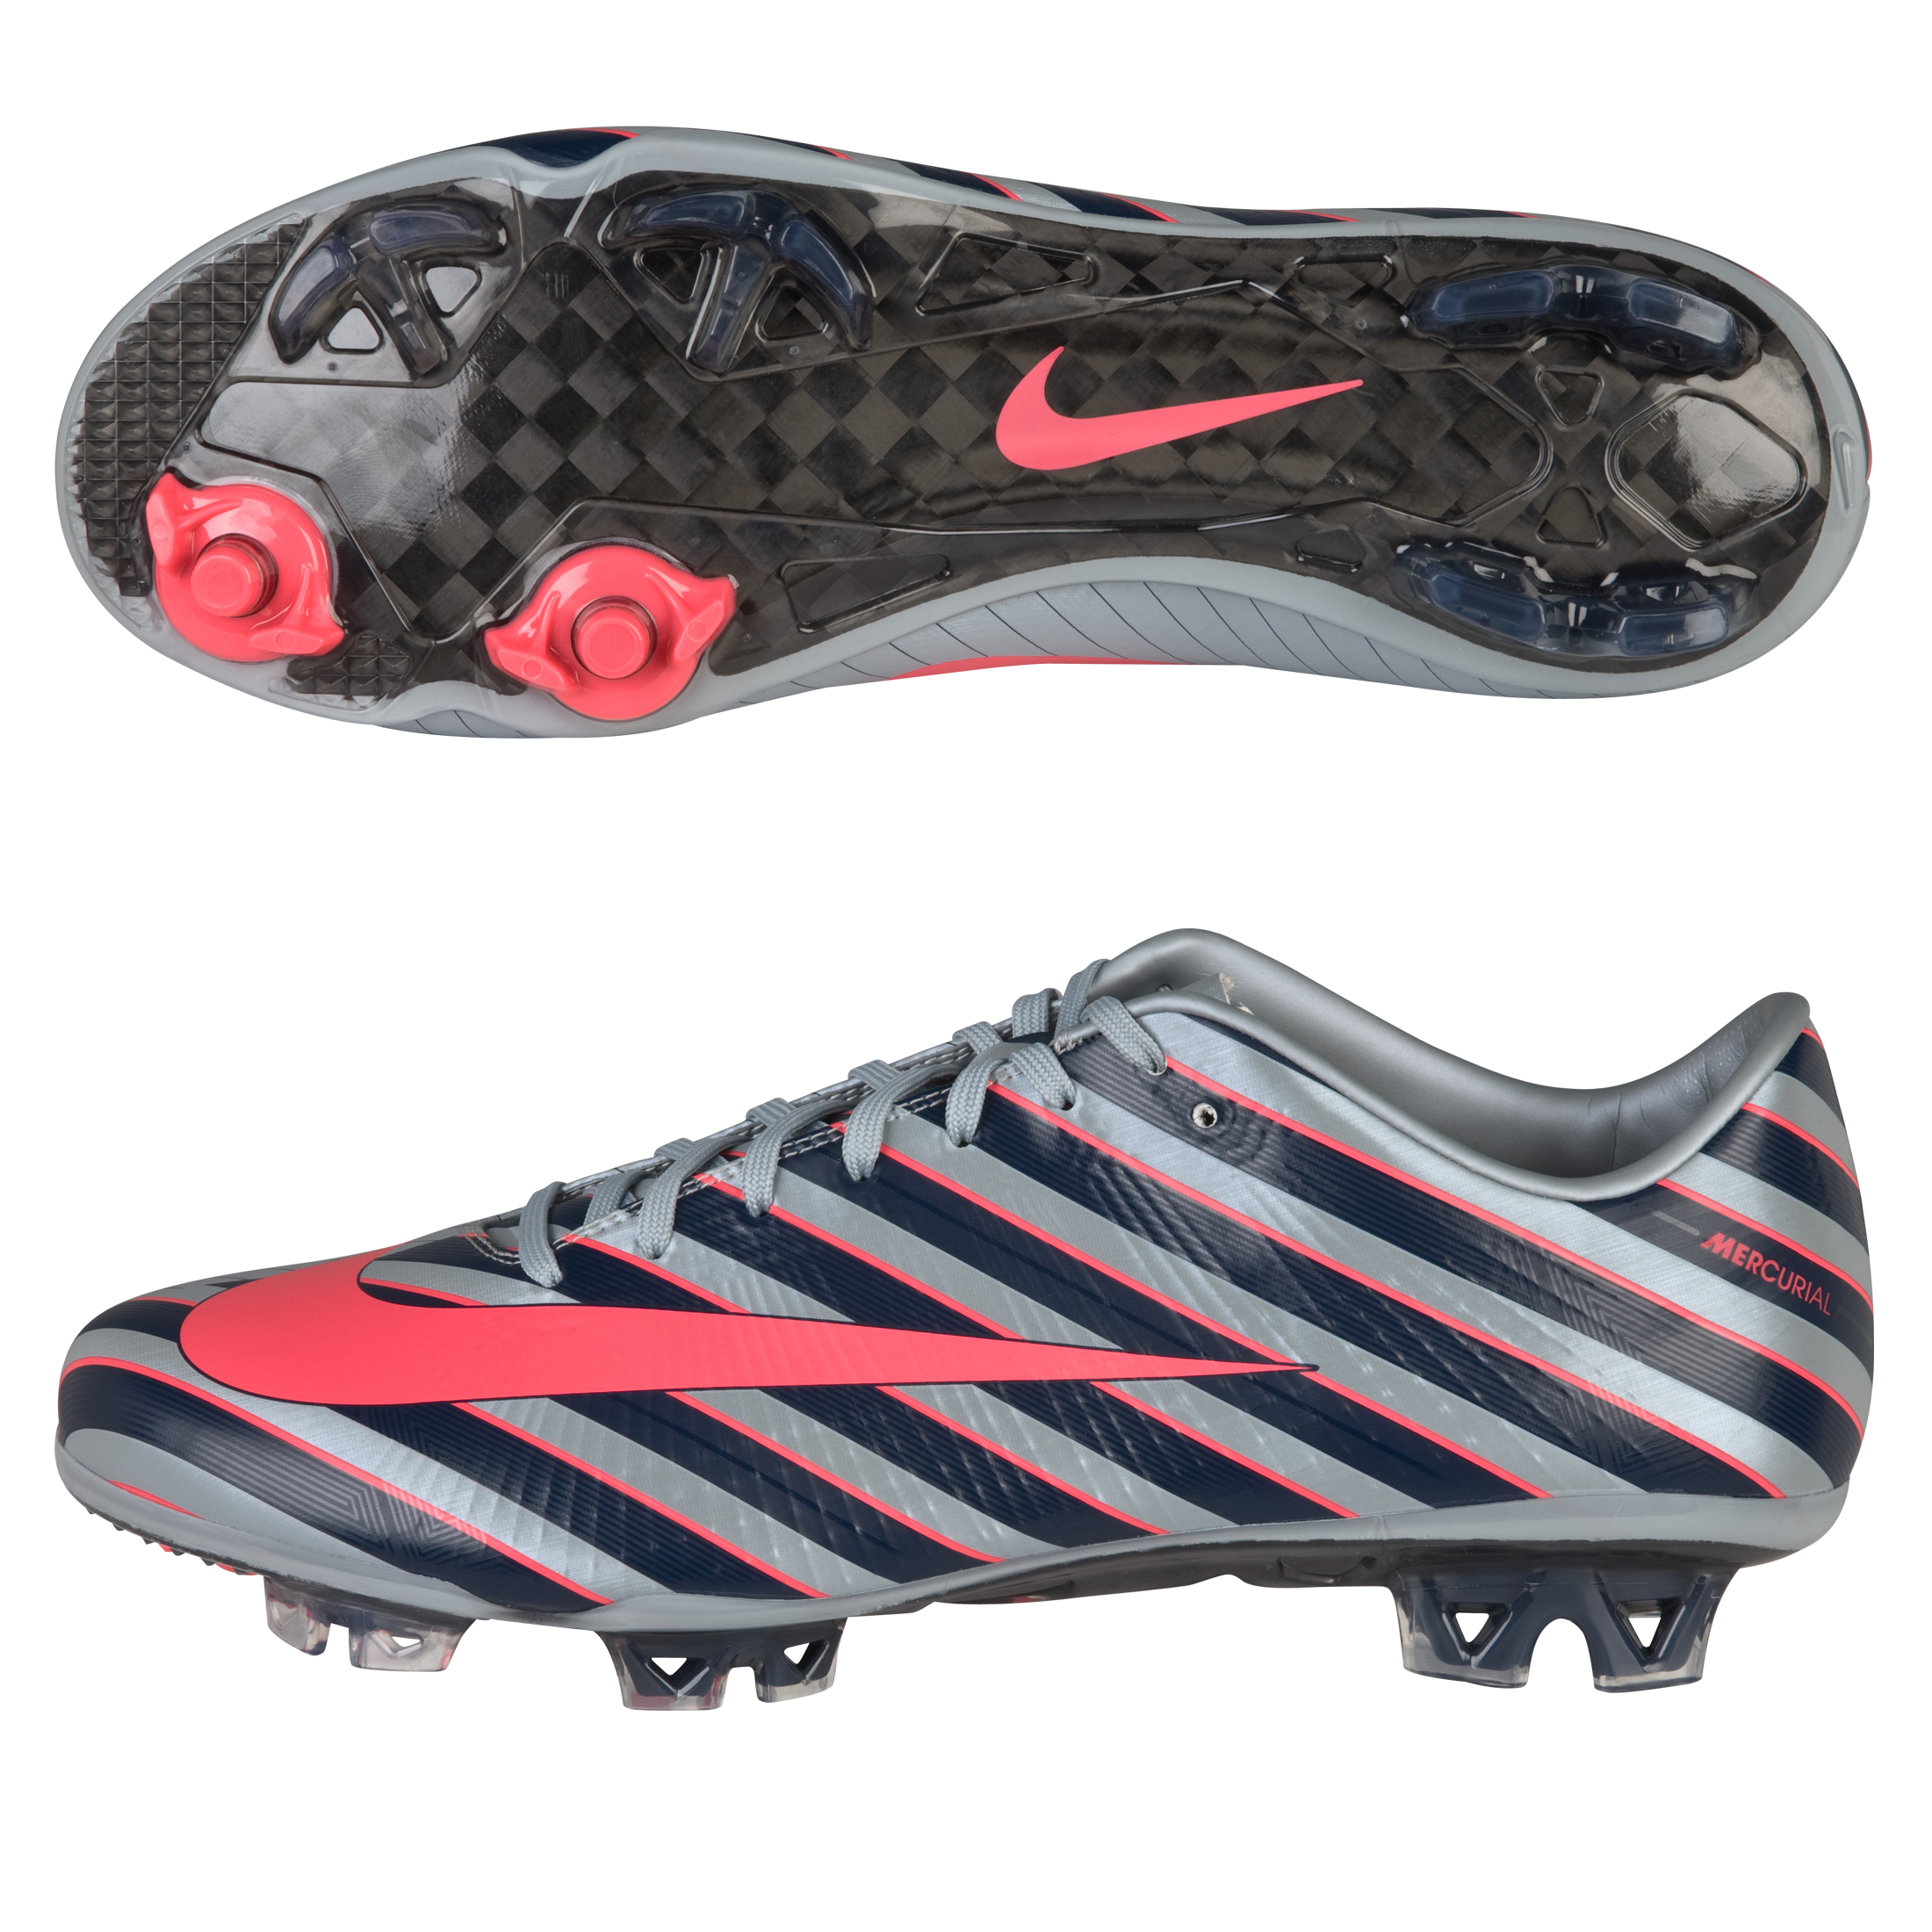 Nike Mercurial Vapor Superfly CR7 III Firm Ground Football Boots - Metallic Blue/Solar Red/Dark Obsidian